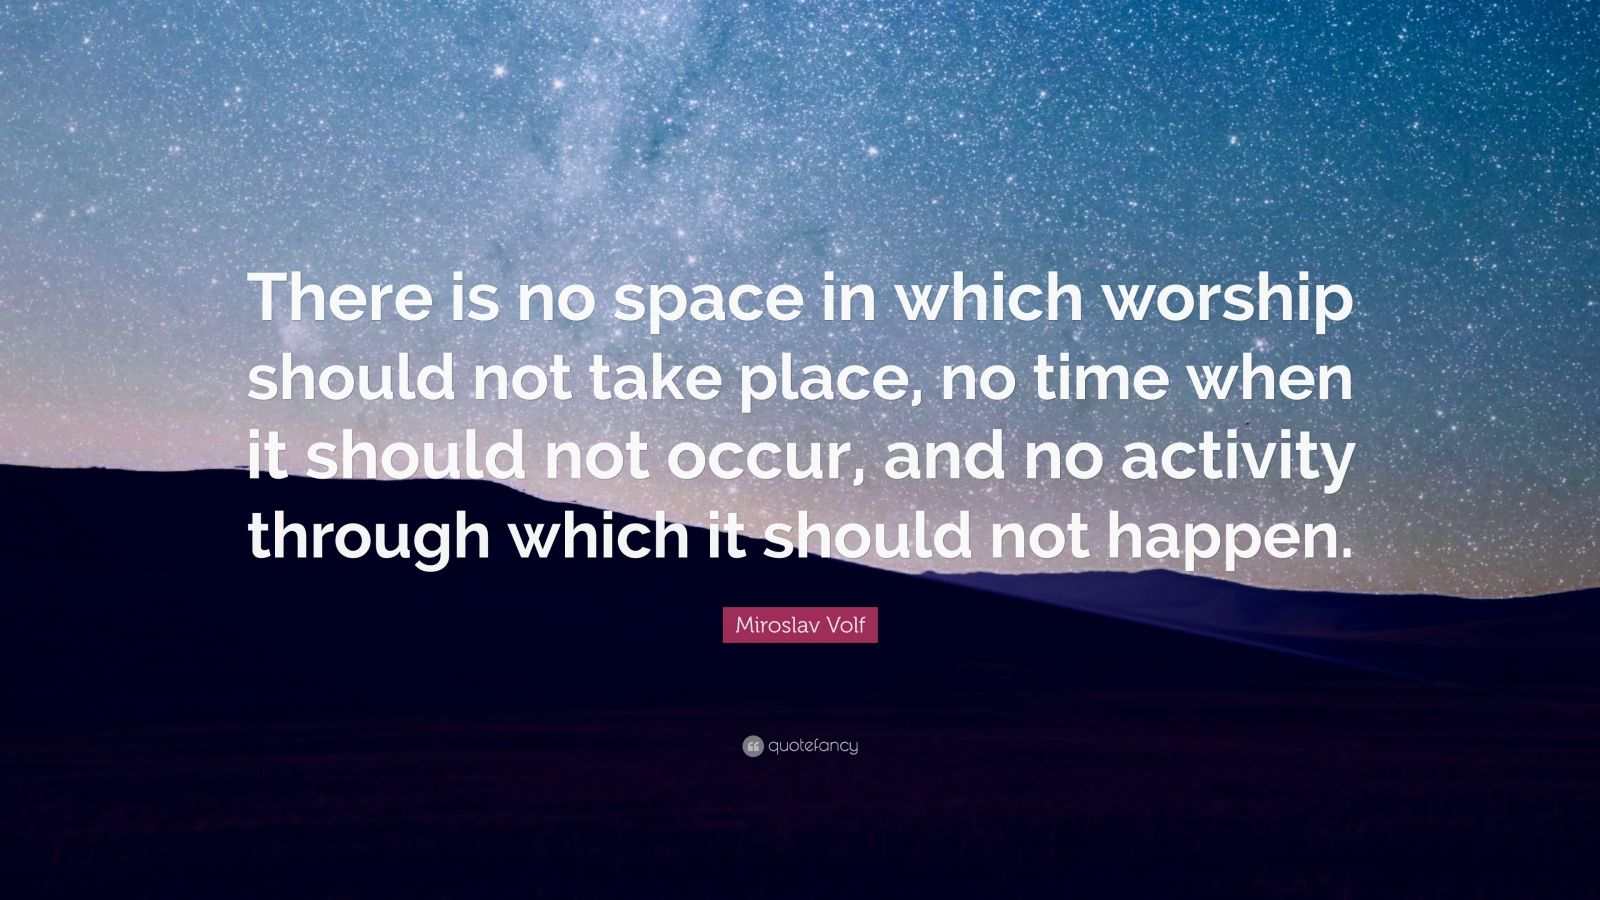 """Miroslav Volf Quote: """"There is no space in which worship should not take place, no time when it should not occur, and no activity through which it should not happen."""""""